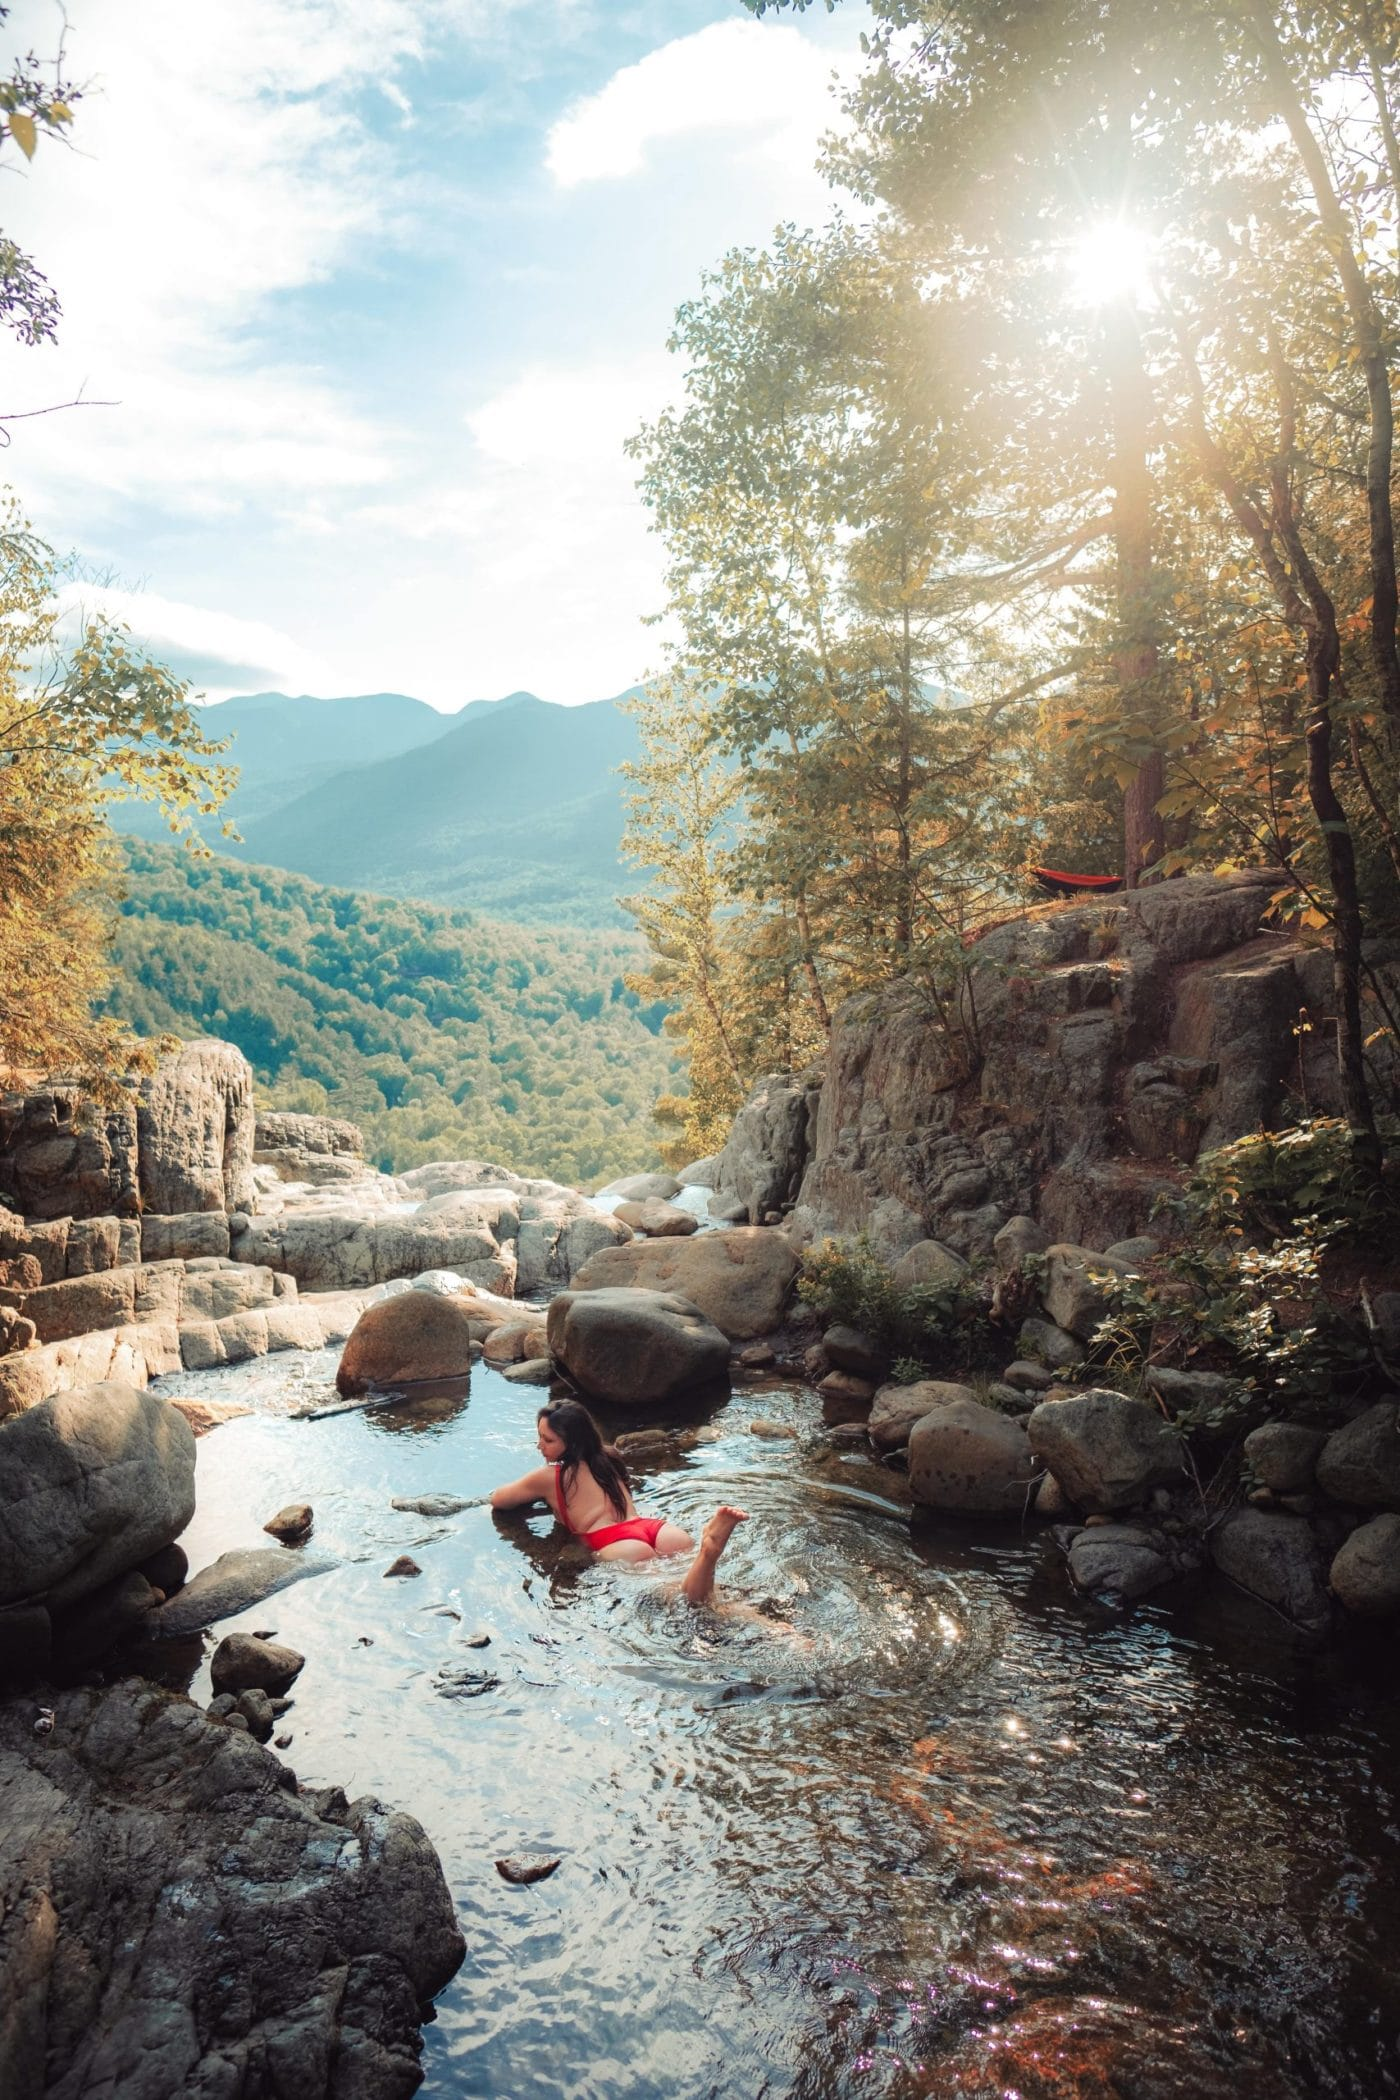 How to find hidden gems in the Adirondack Mountains, Upstate New York